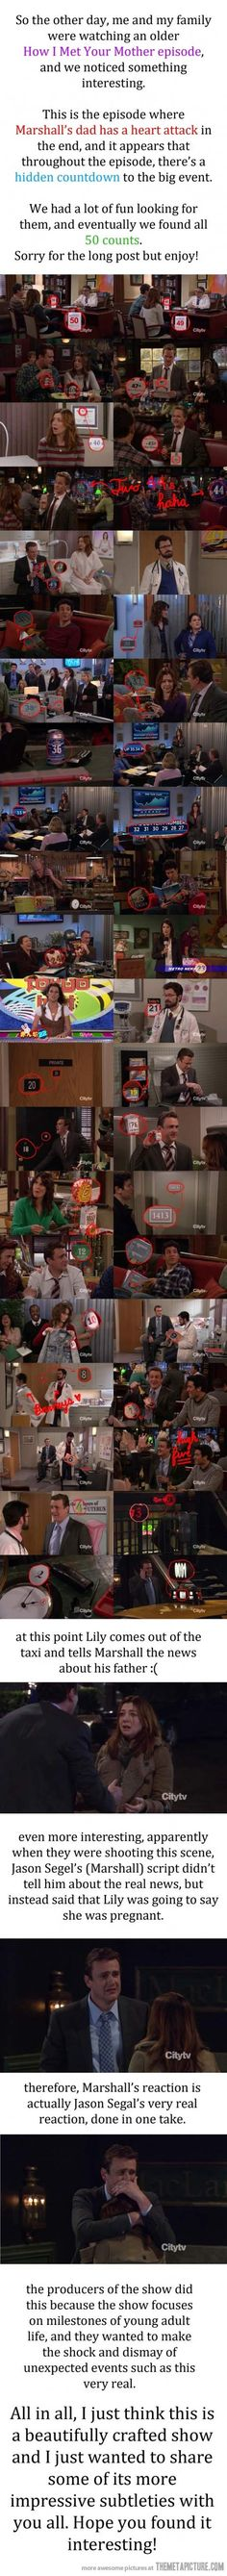 Hidden messages in How I Met Your Mother…